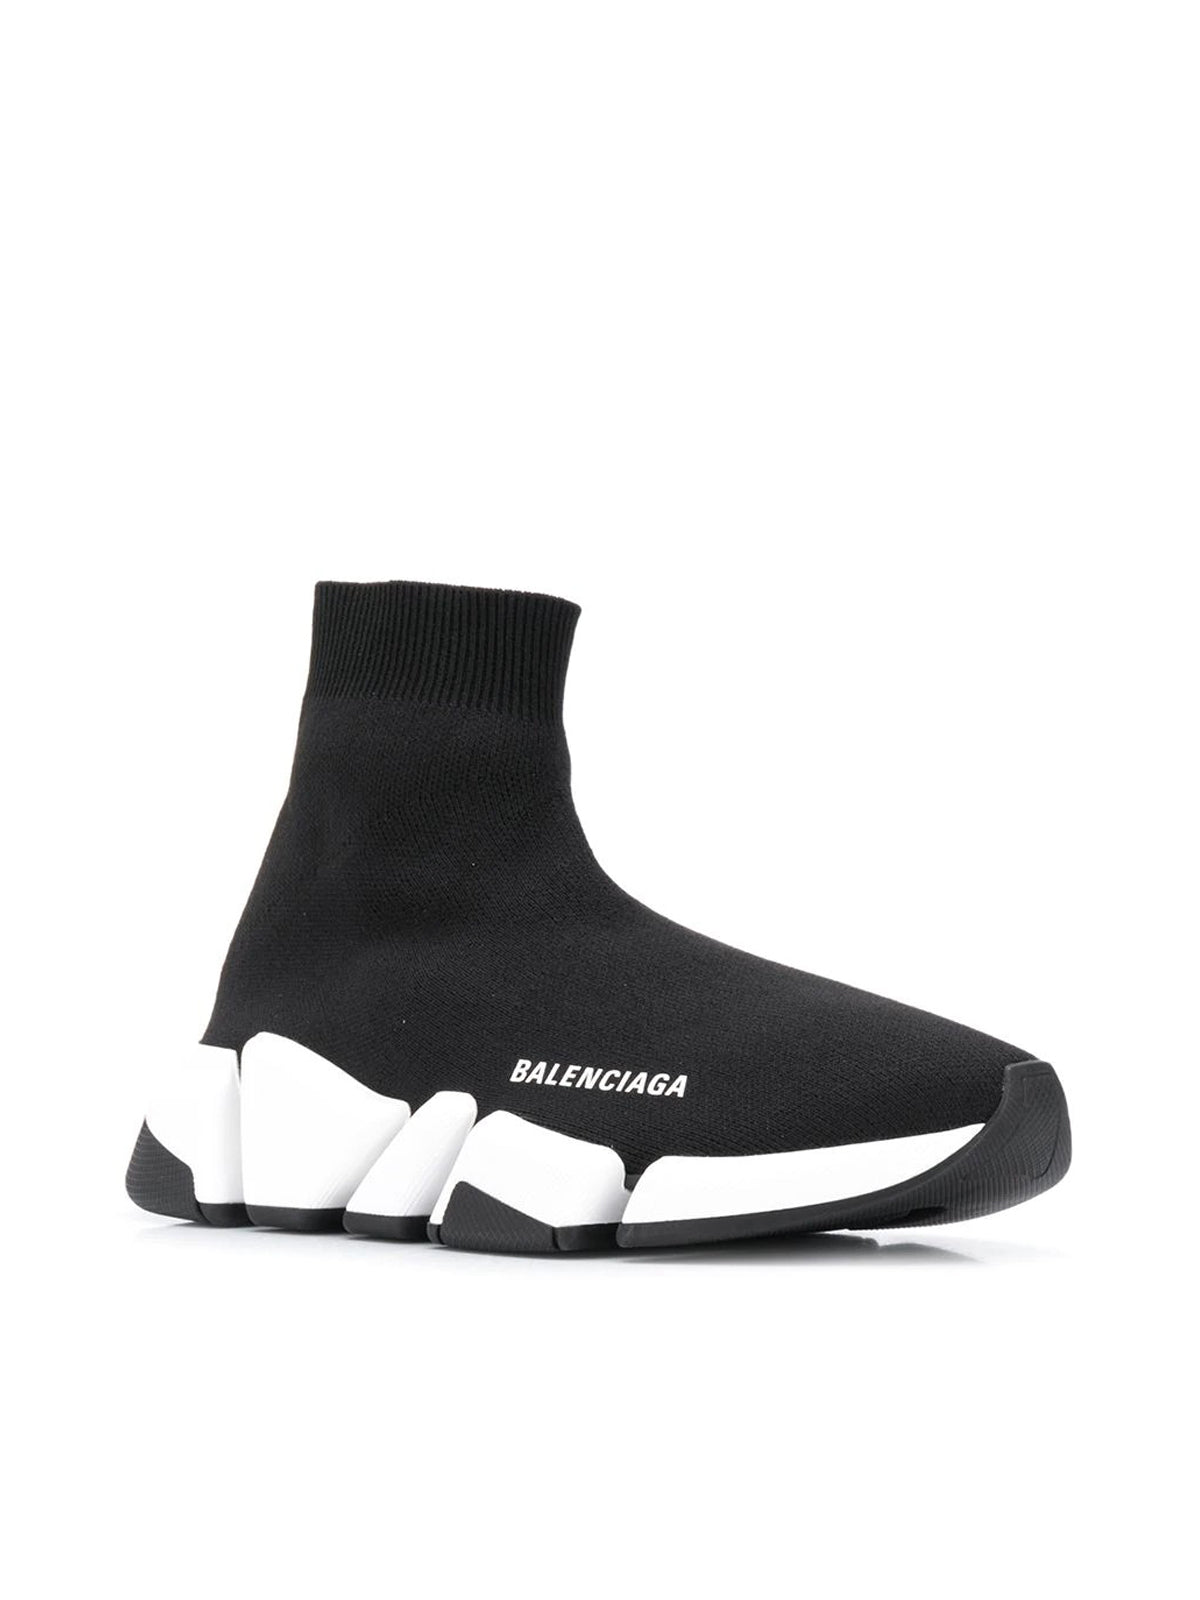 Speed.2 sock-style sneakers